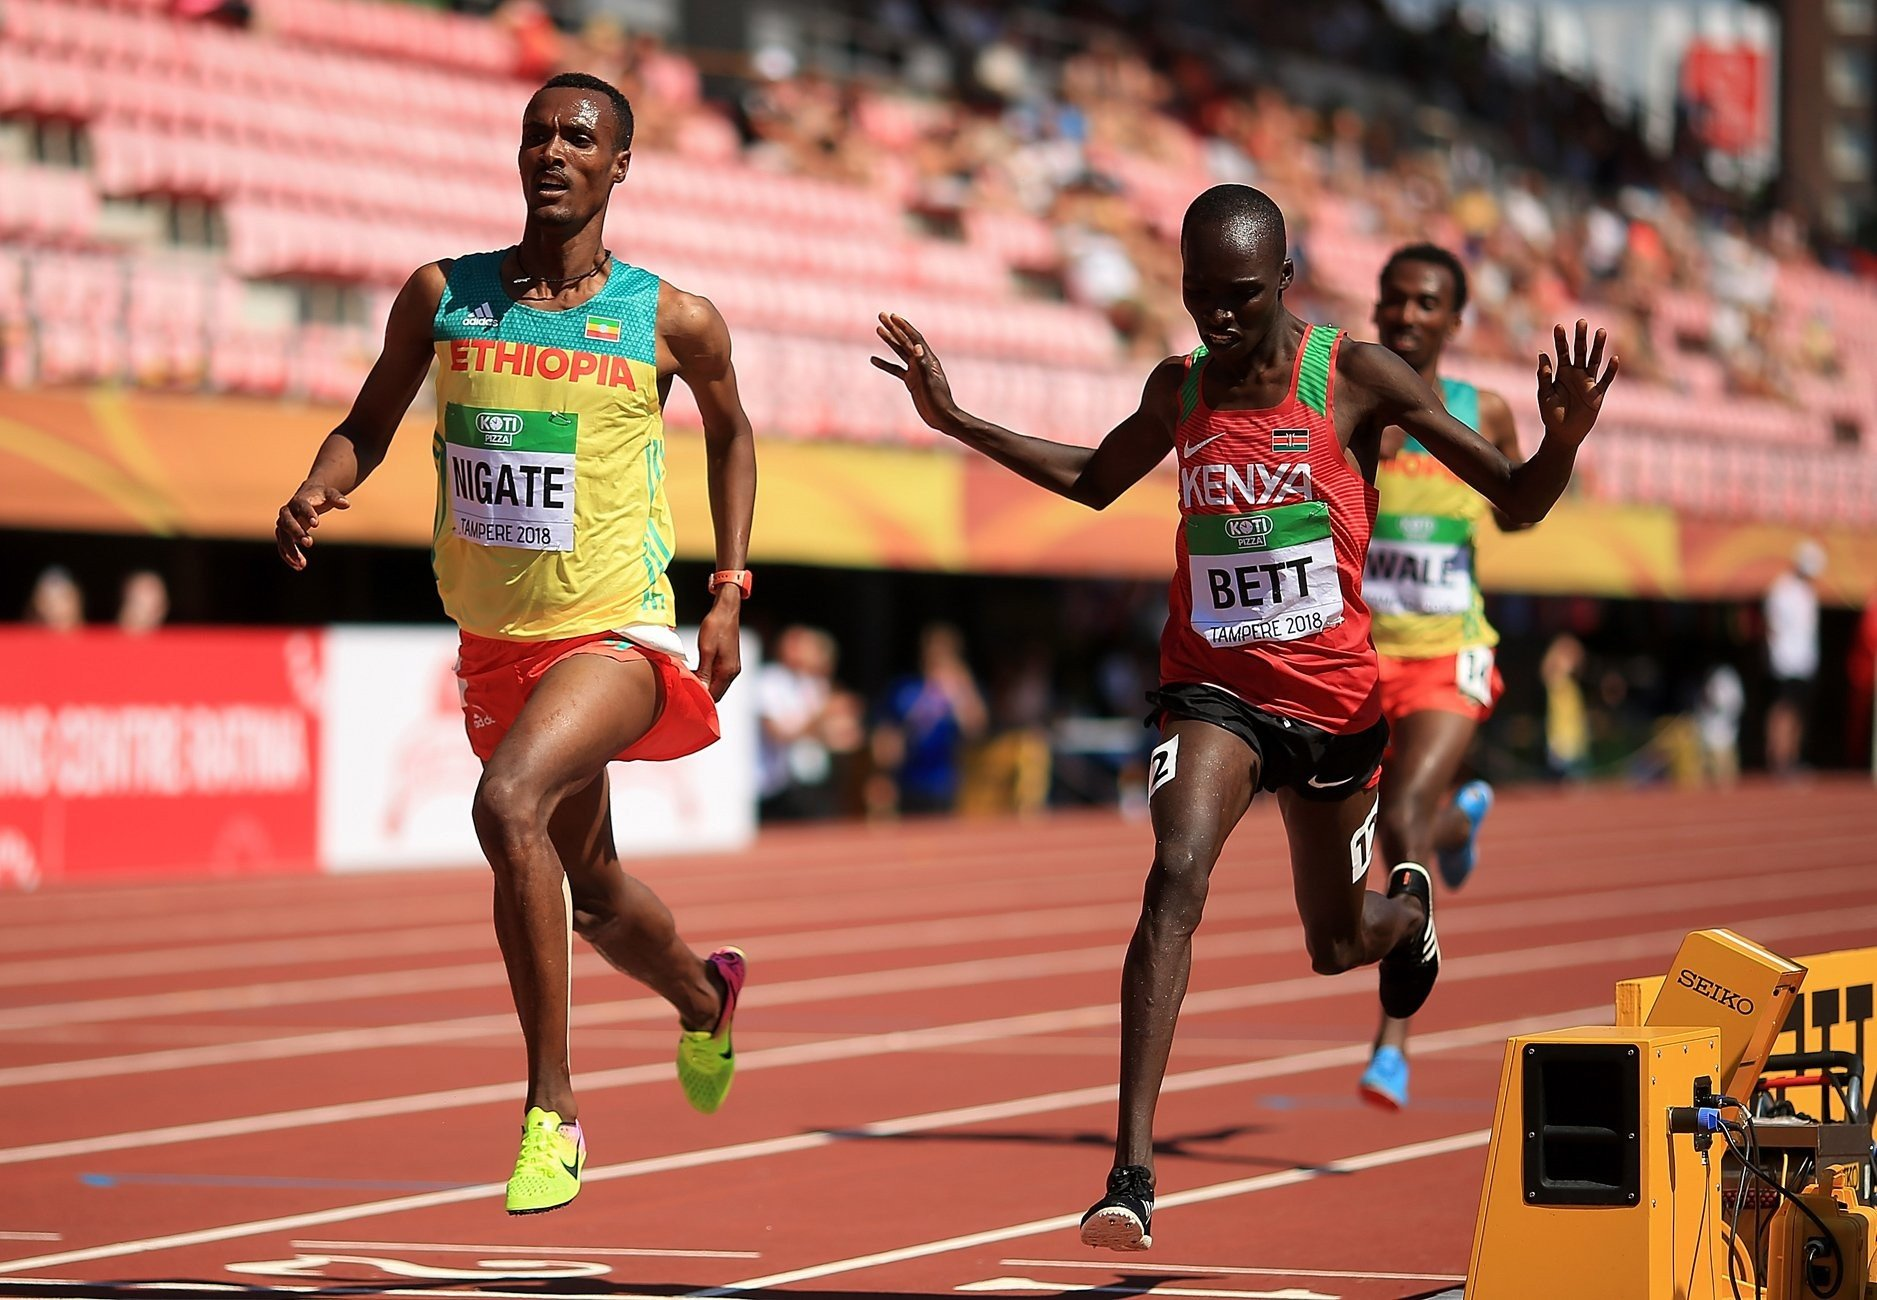 Takele Nigate of Ethiopia outsprints Kenyan Leonard Bett to win the men's 3000m steeplechase at the IAAF World U20 Championships Tampere 2018 / Photo Credit: Getty for the IAAF